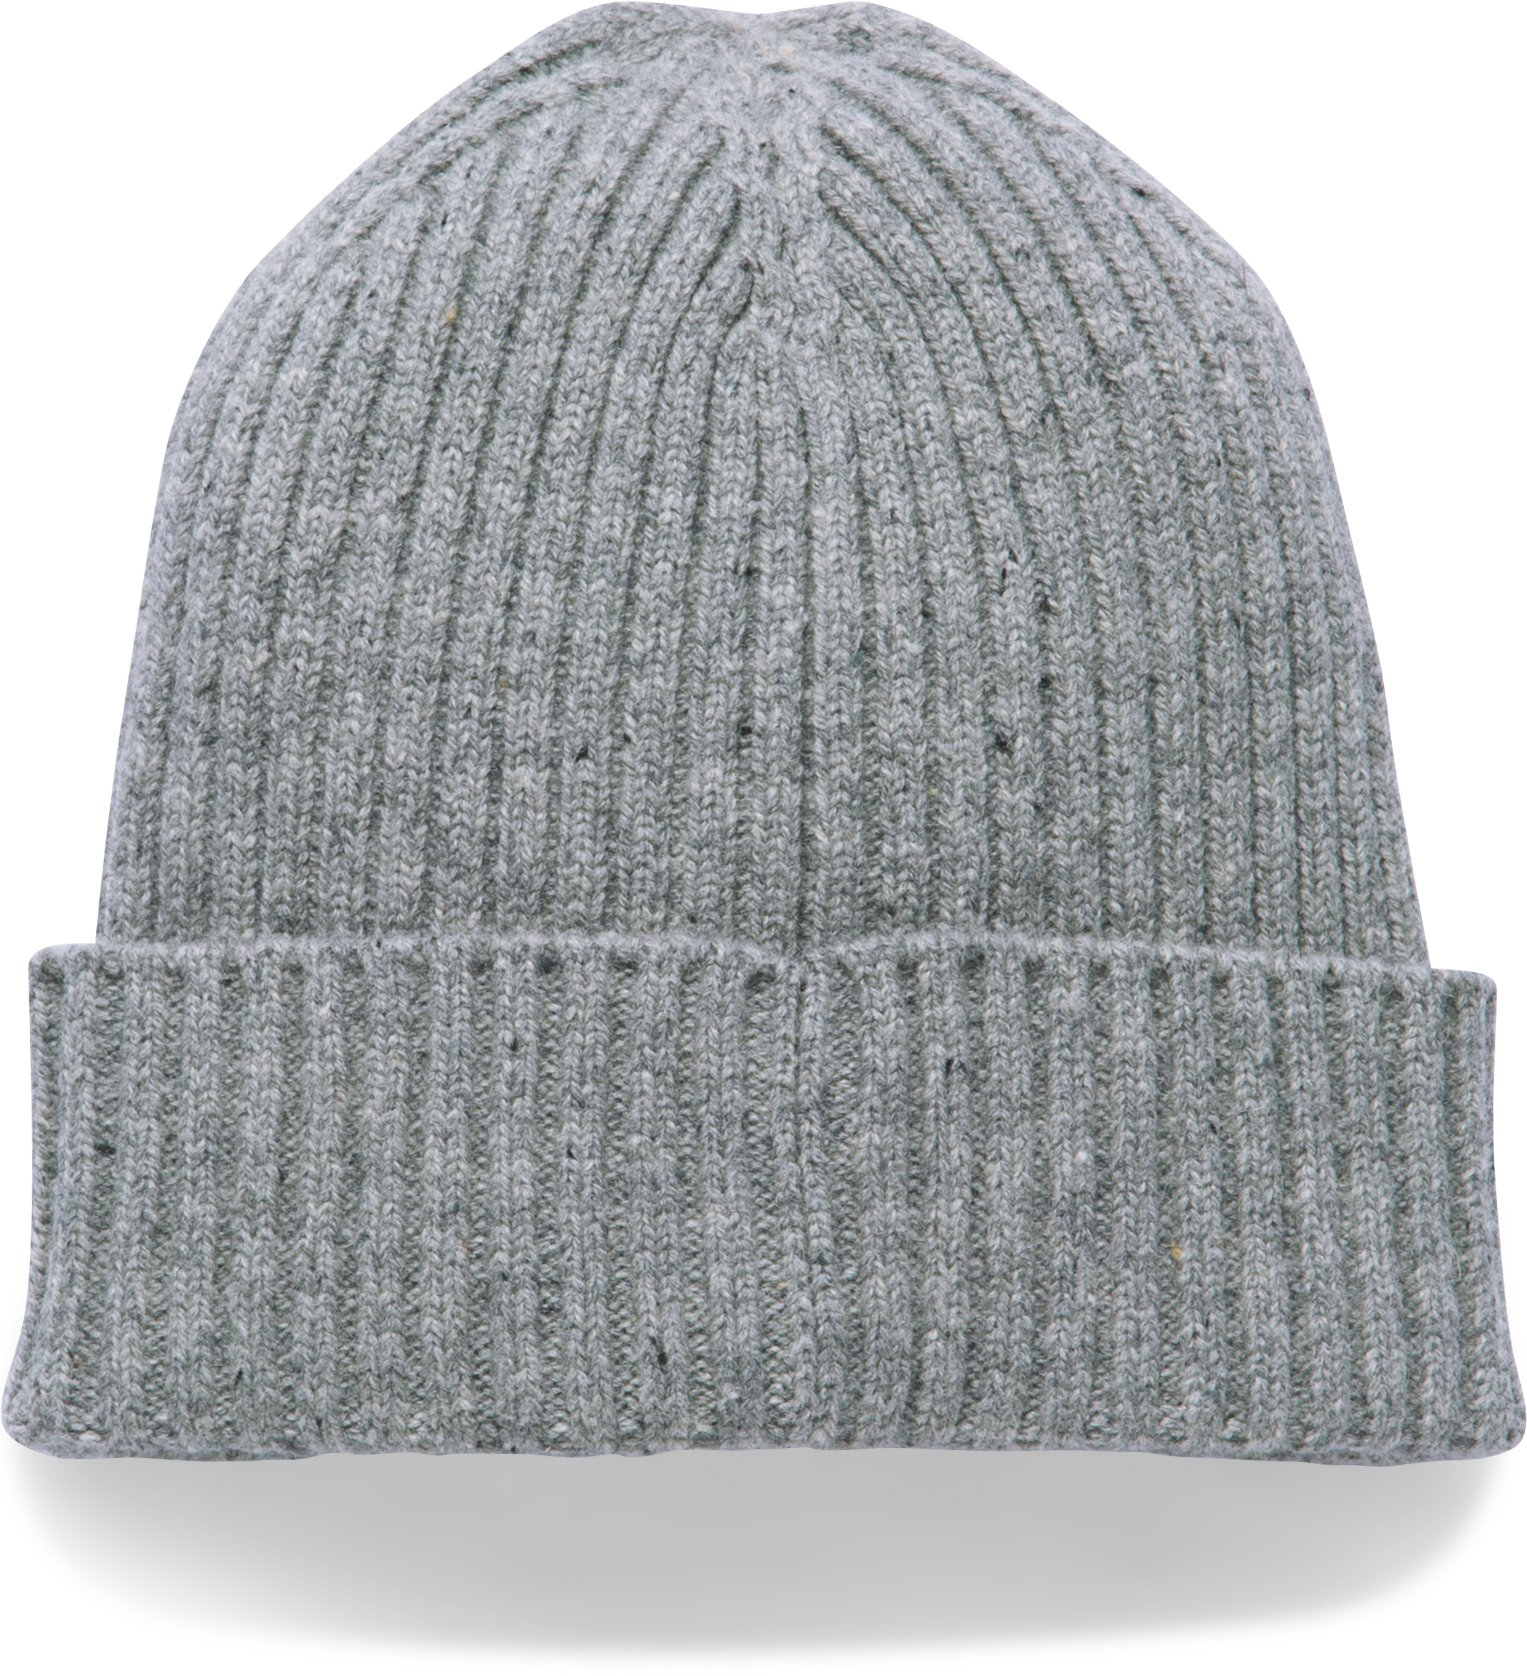 Men's UA Outdoor Performance Wool Beanie, True Gray Heather,